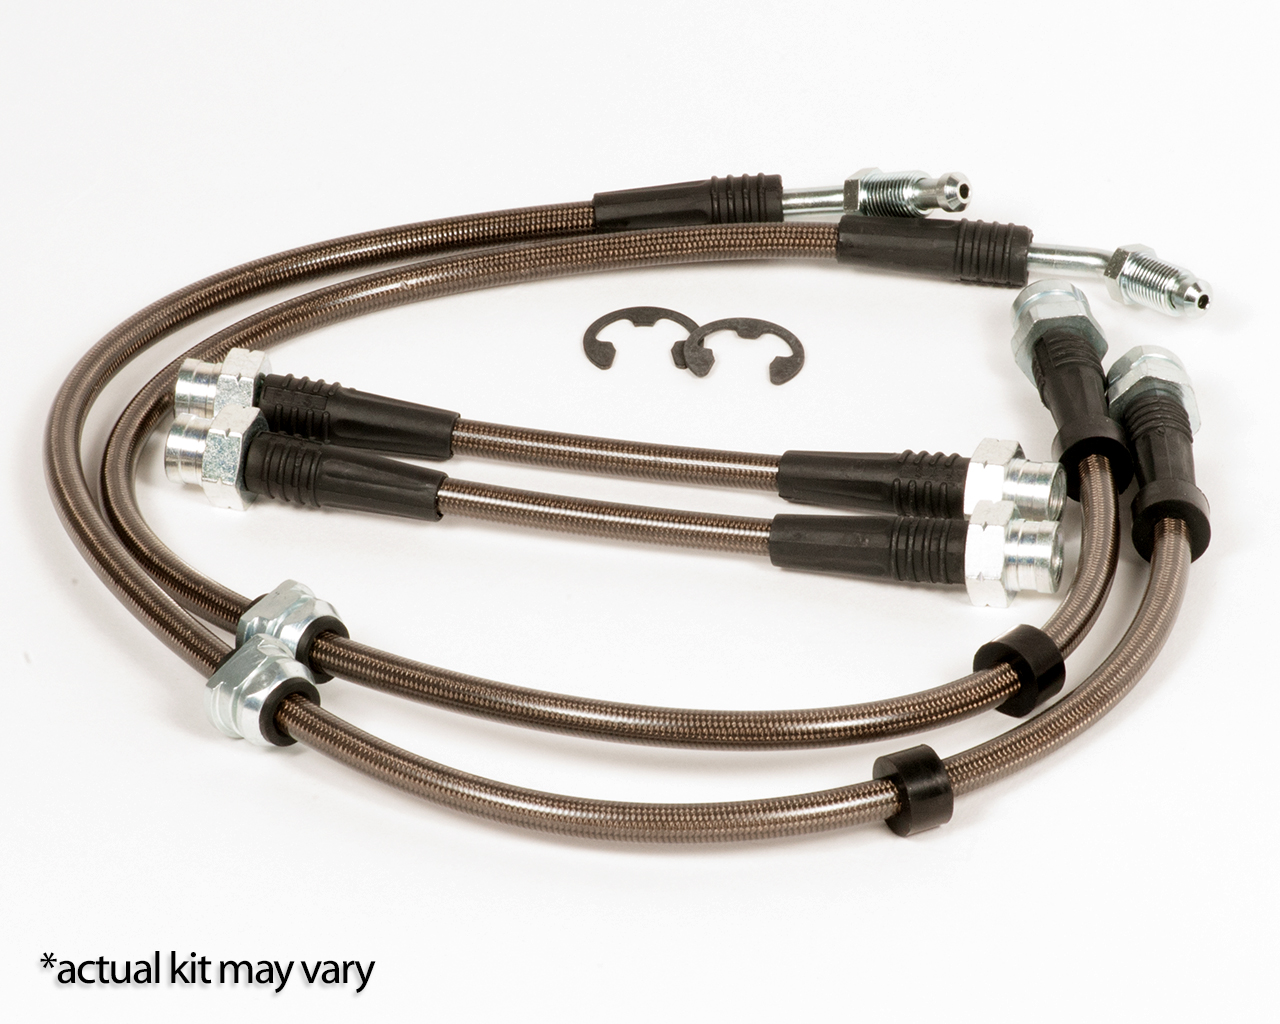 Tyrolsport Stainless Brake Line Kit, MK7 Golf R and Audi S3 (MK6 11+)